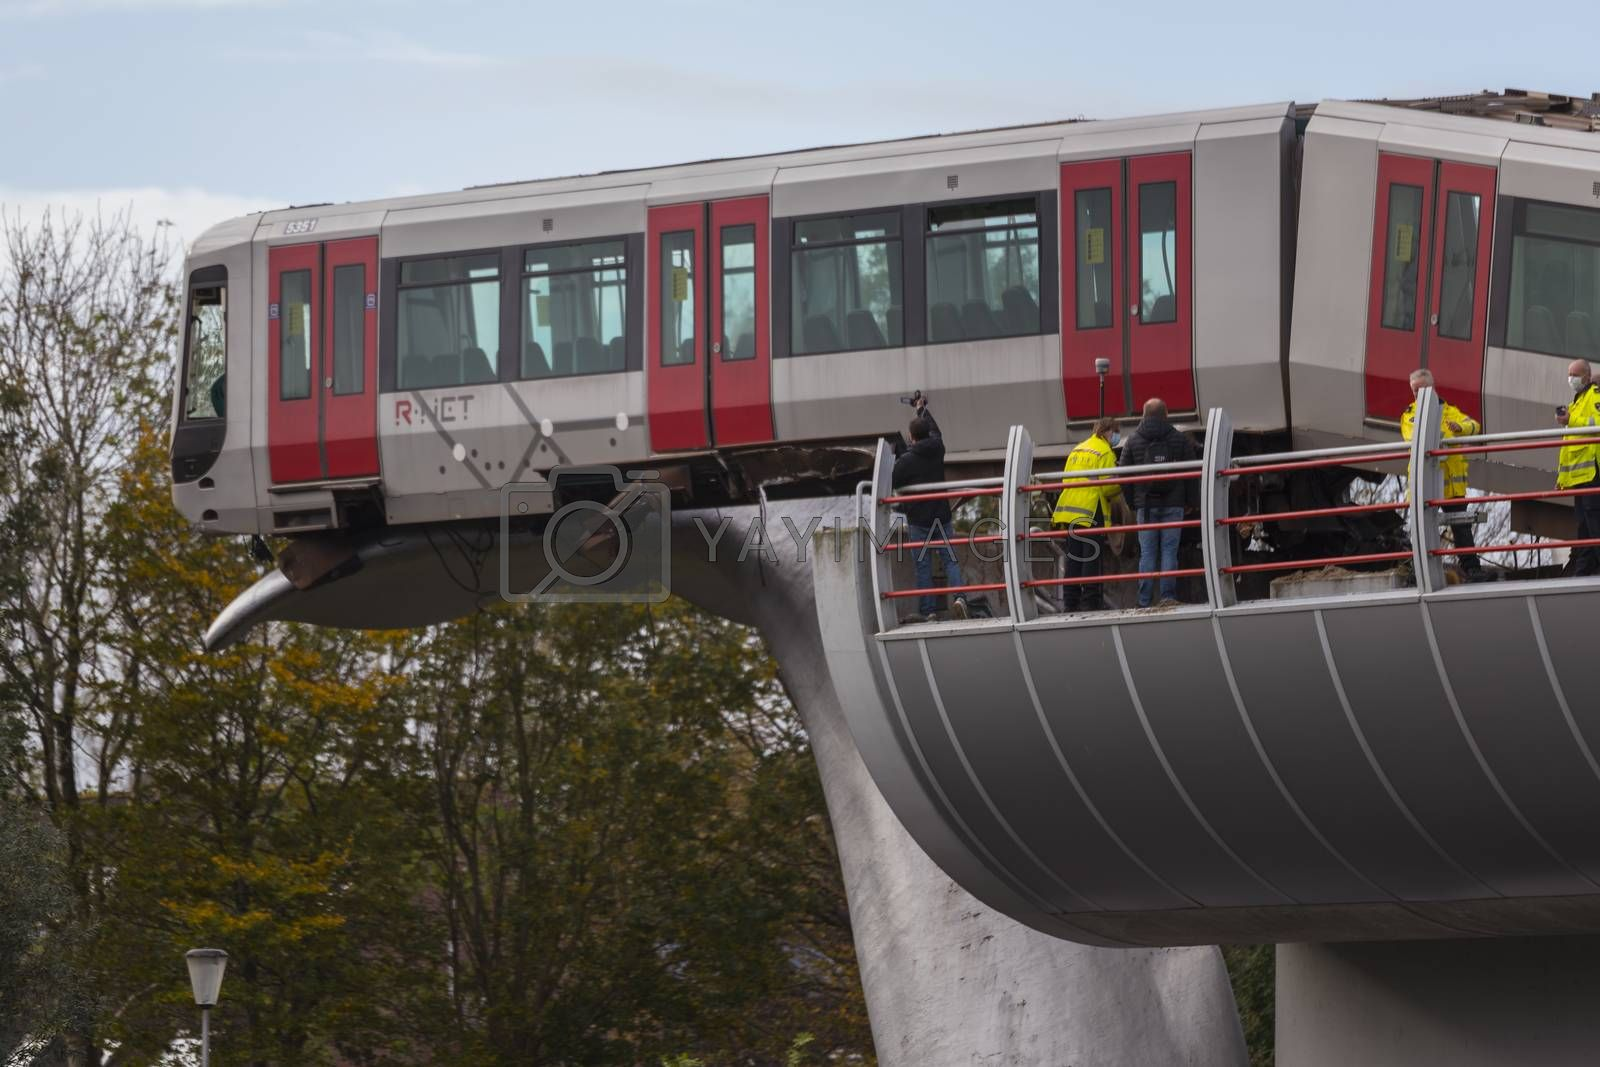 Spijkenisse,Holland,02-nov-2020:a metro has been shot through the buffer at the station de akkers in Spijkenisse in the Netherlands, no injuries were reported